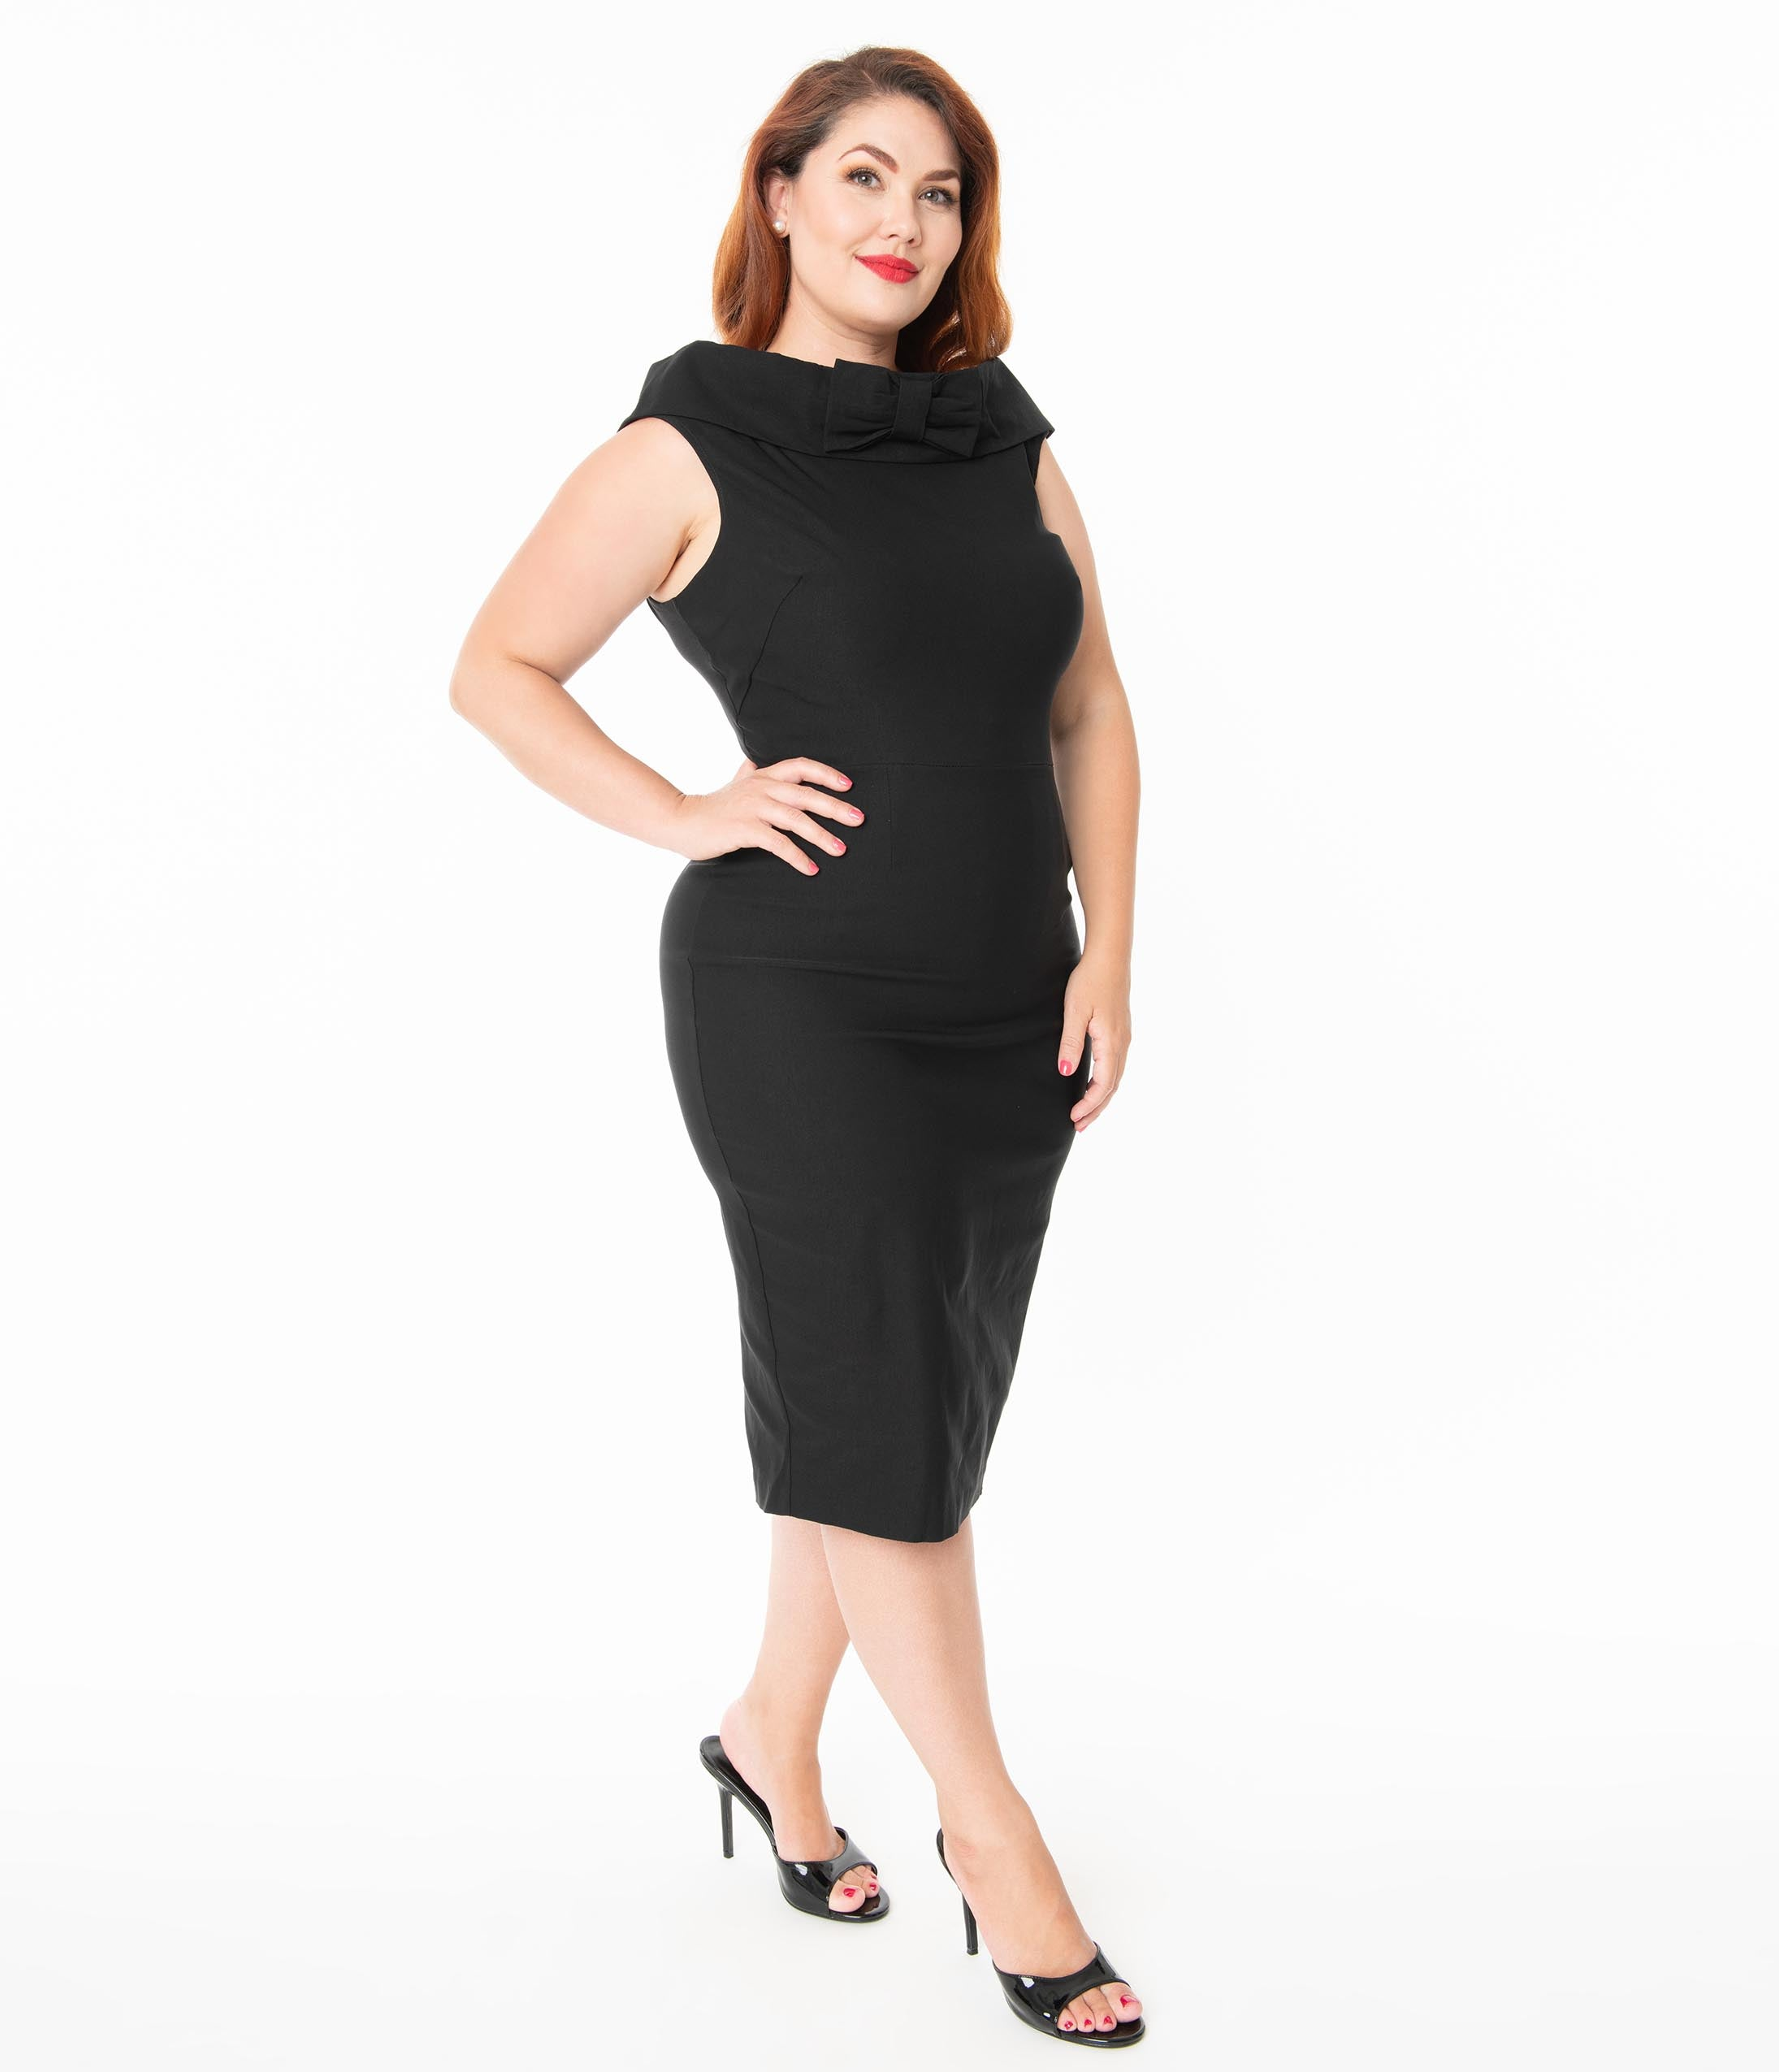 60s 70s Plus Size Dresses, Clothing, Costumes Barbie X Unique Vintage Plus Size 1960S Style Black Sheath Dress $98.00 AT vintagedancer.com